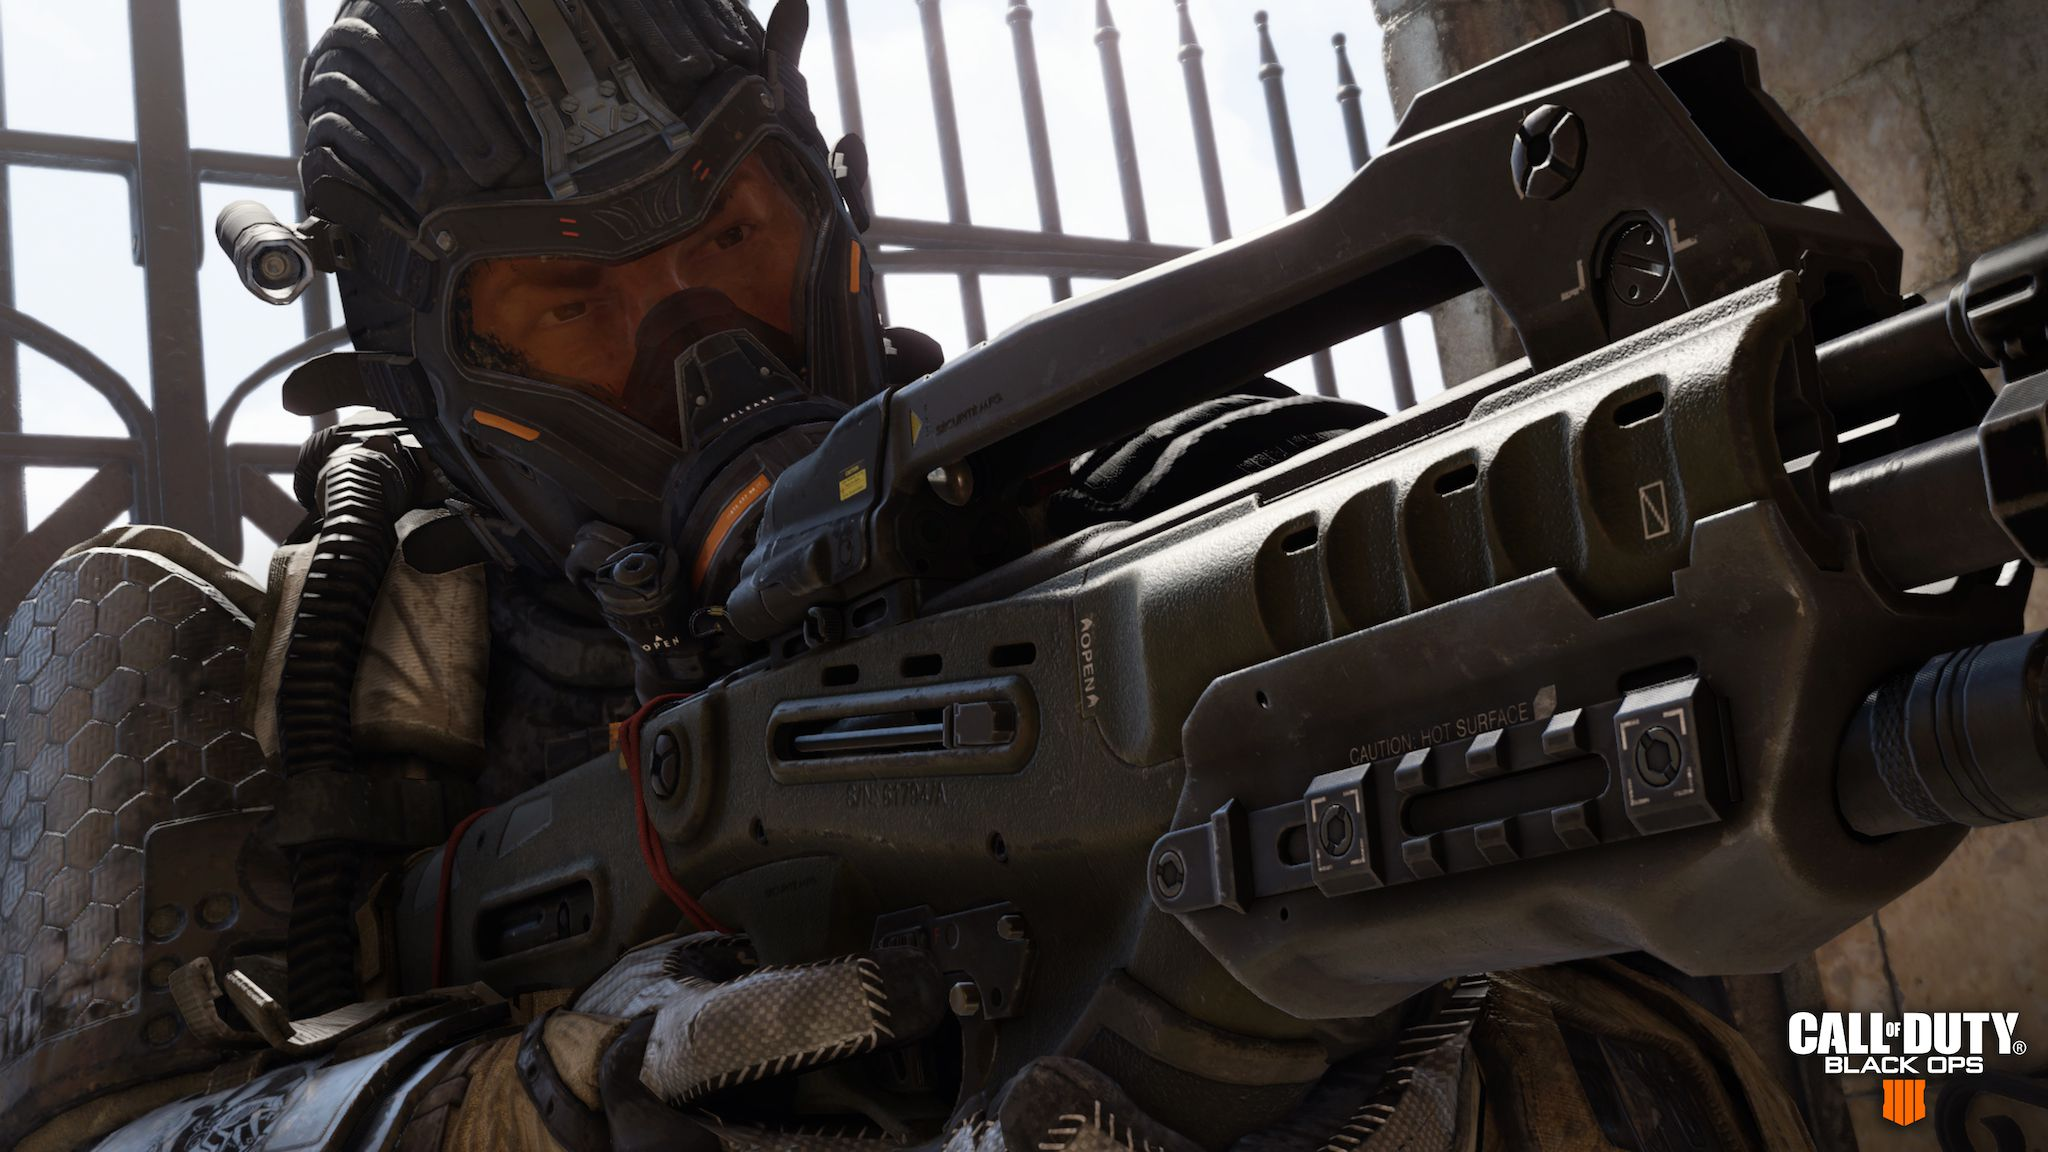 3D Gun Games No Download 6 ways to boost your fps game